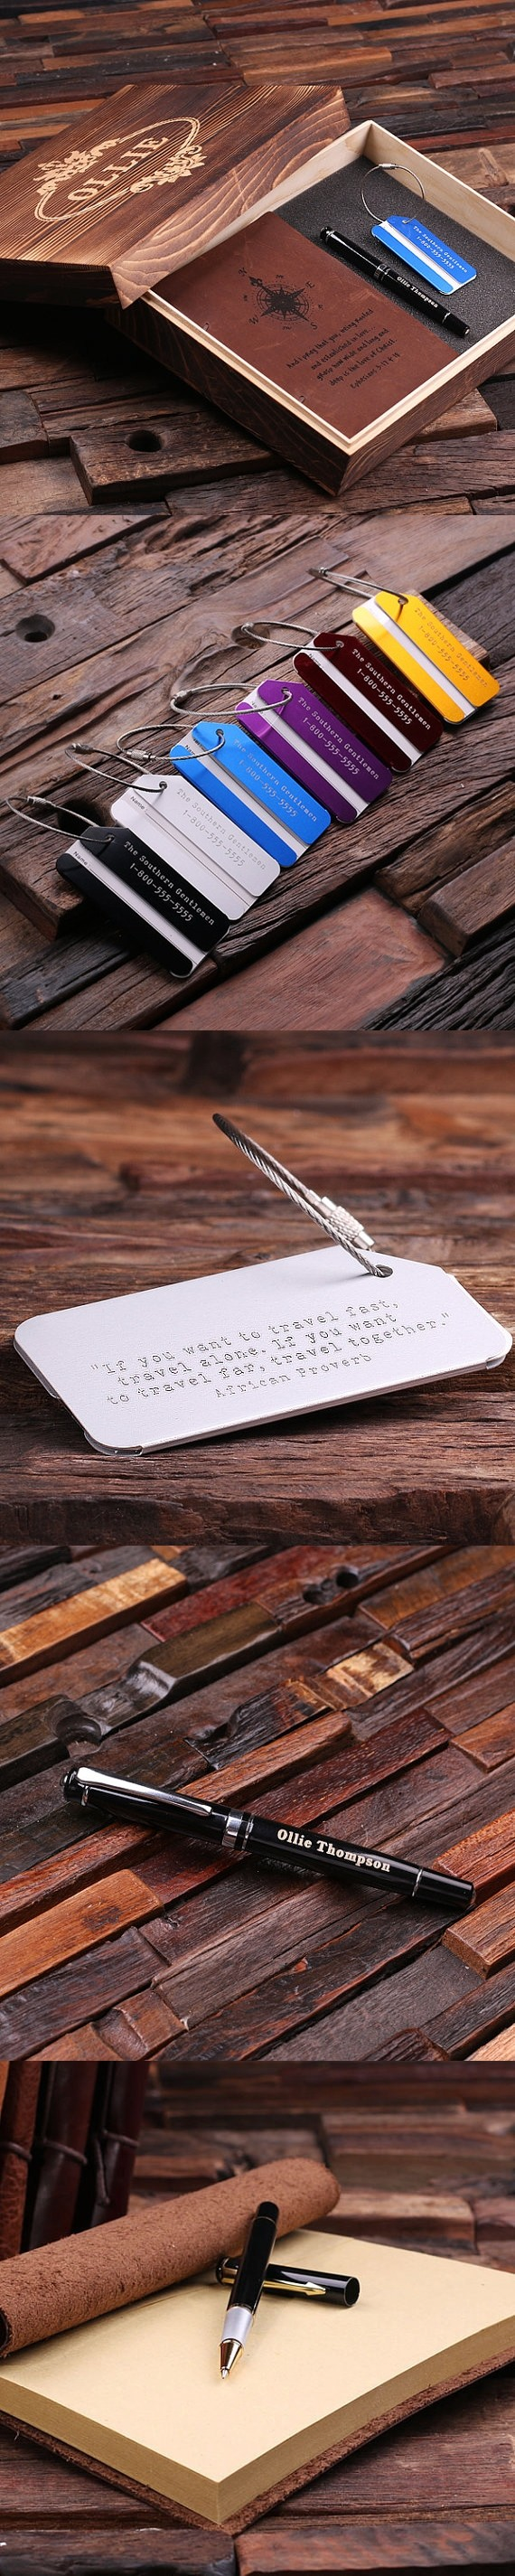 Personalized Gift-Set with Journal, Pen and Luggage Tag in Wood Box